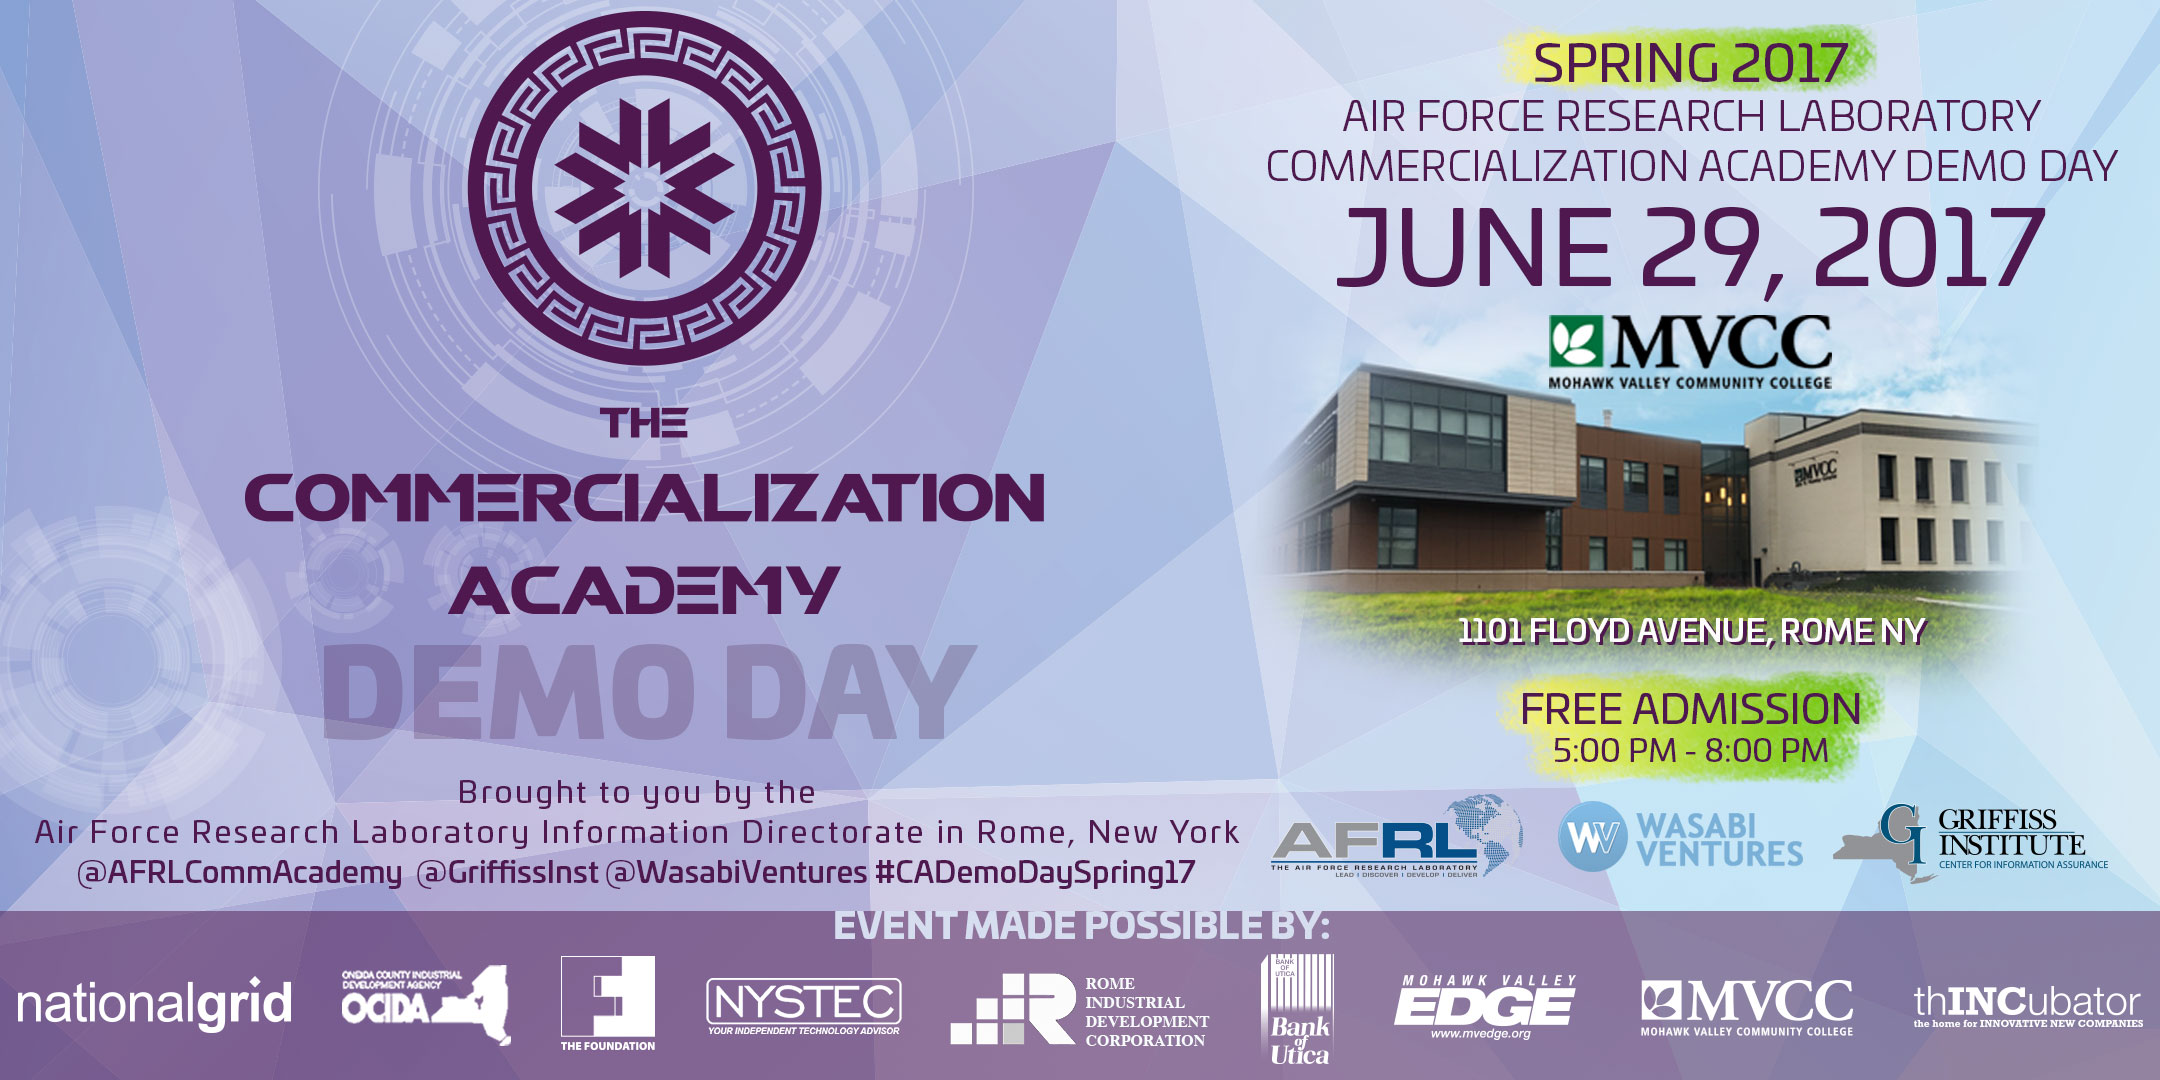 AFRL Commercialization Academy Spring 2017 Demo Day ...